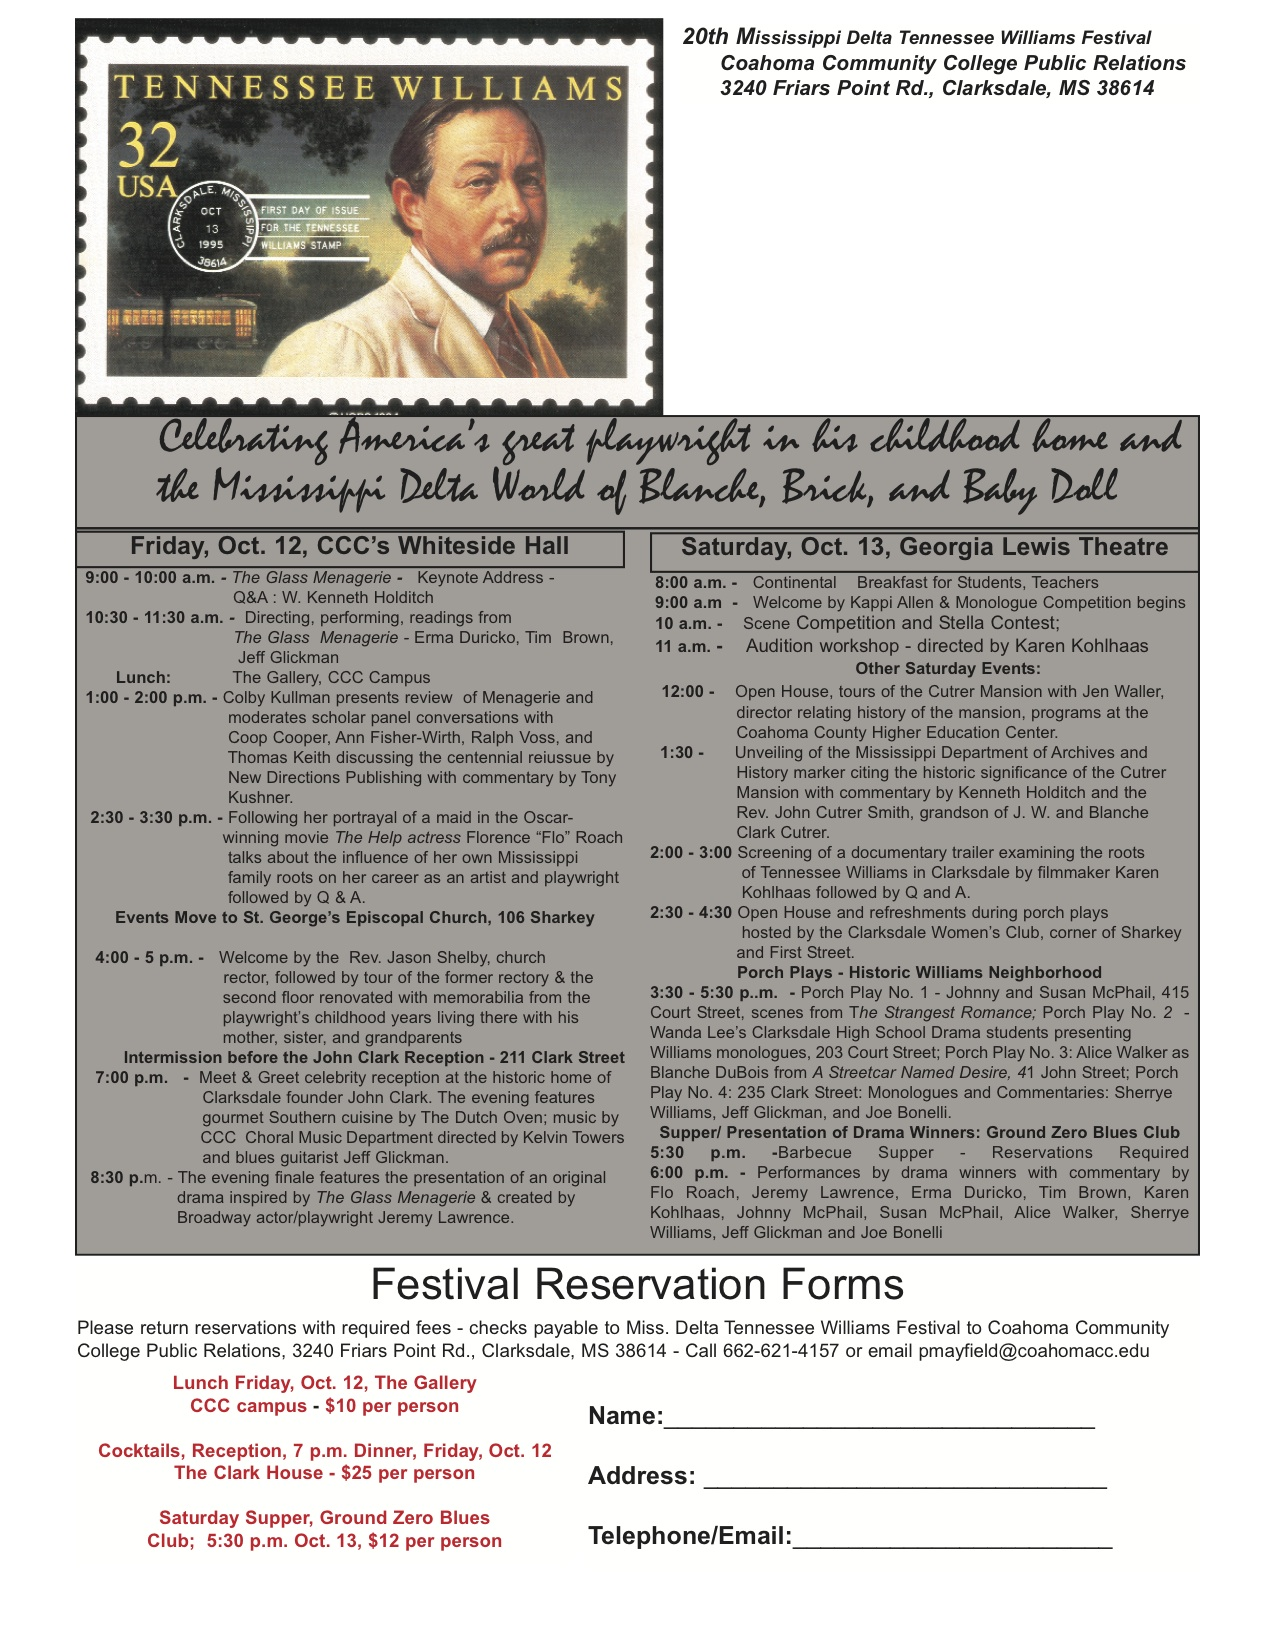 2012 Schedule for Tennessee Williams Festival in Clarksdale